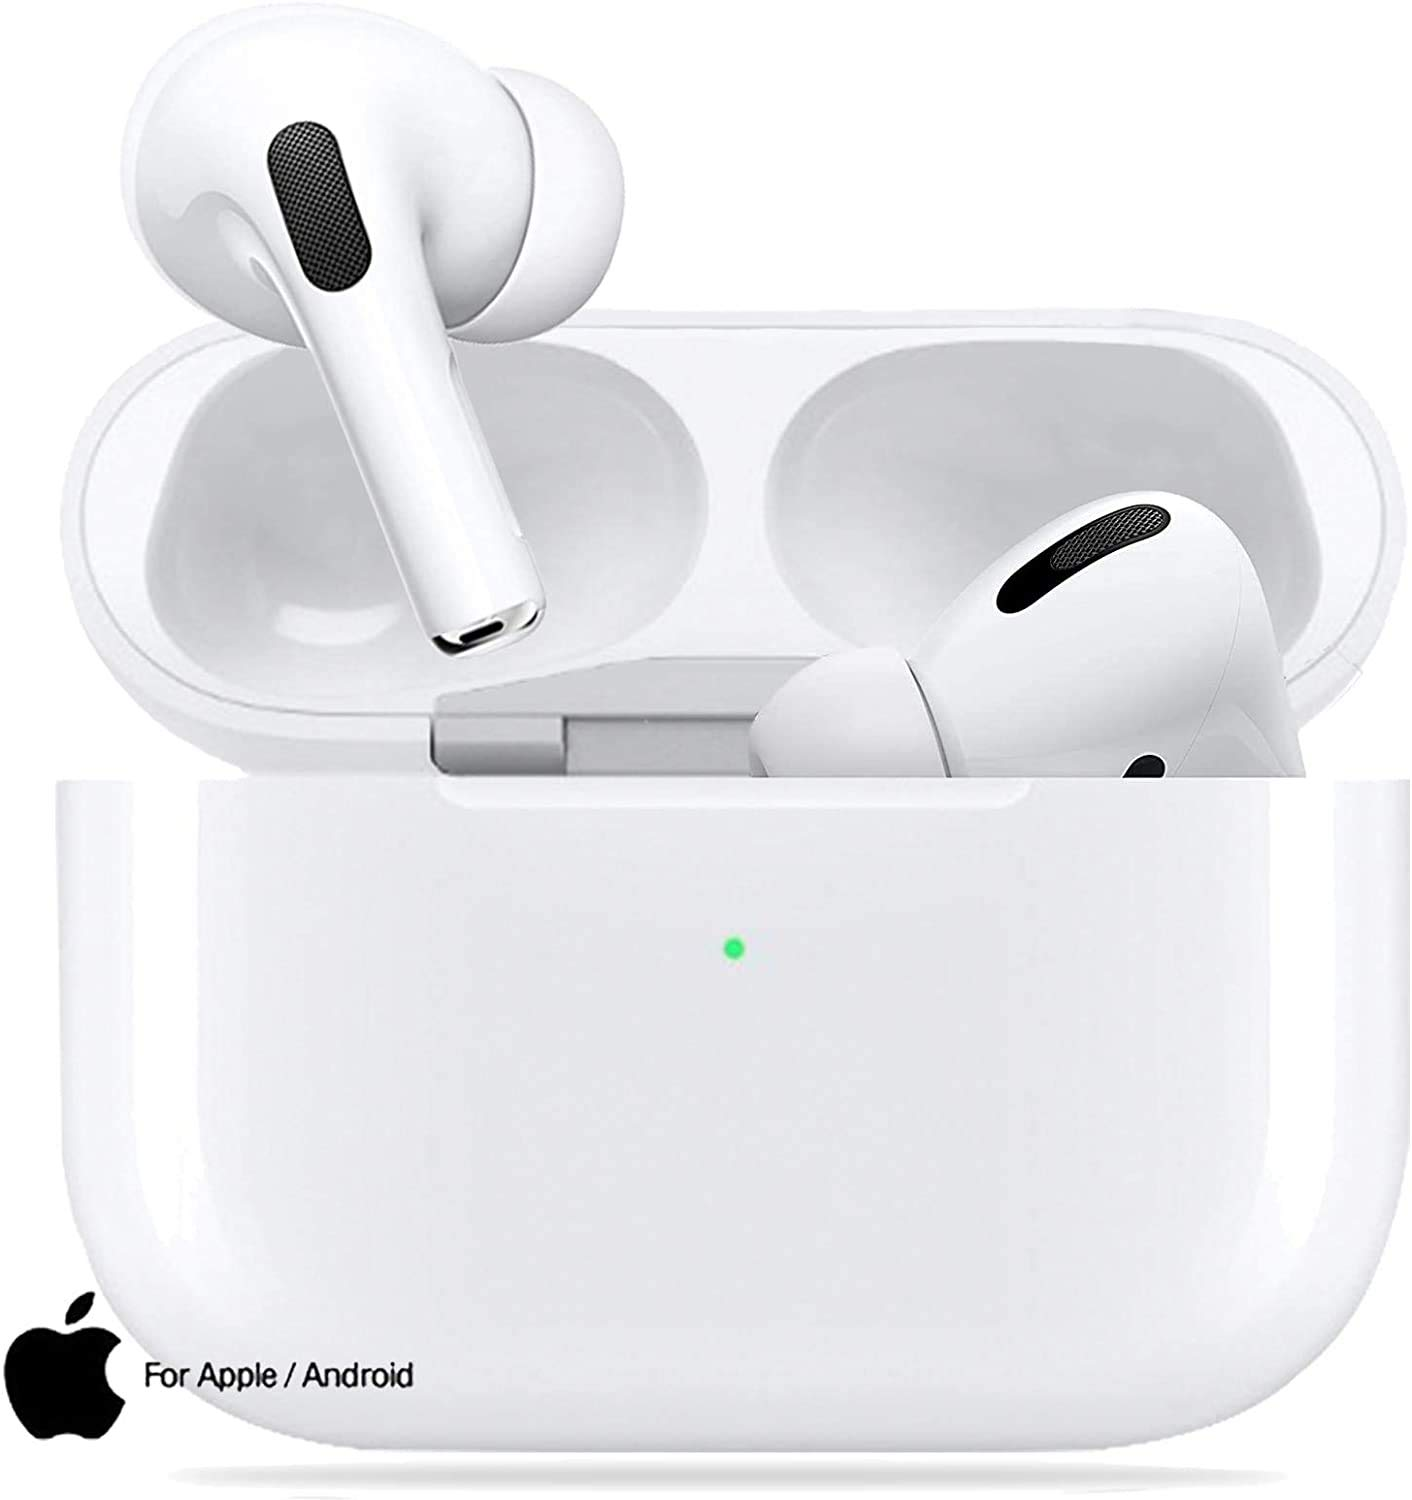 Wireless Earbuds Bluetooth 5.0 with Fast Charging Case IPX5 Waterproof HiFi Stereo Headphones in Ear Built in Mic Headset ...